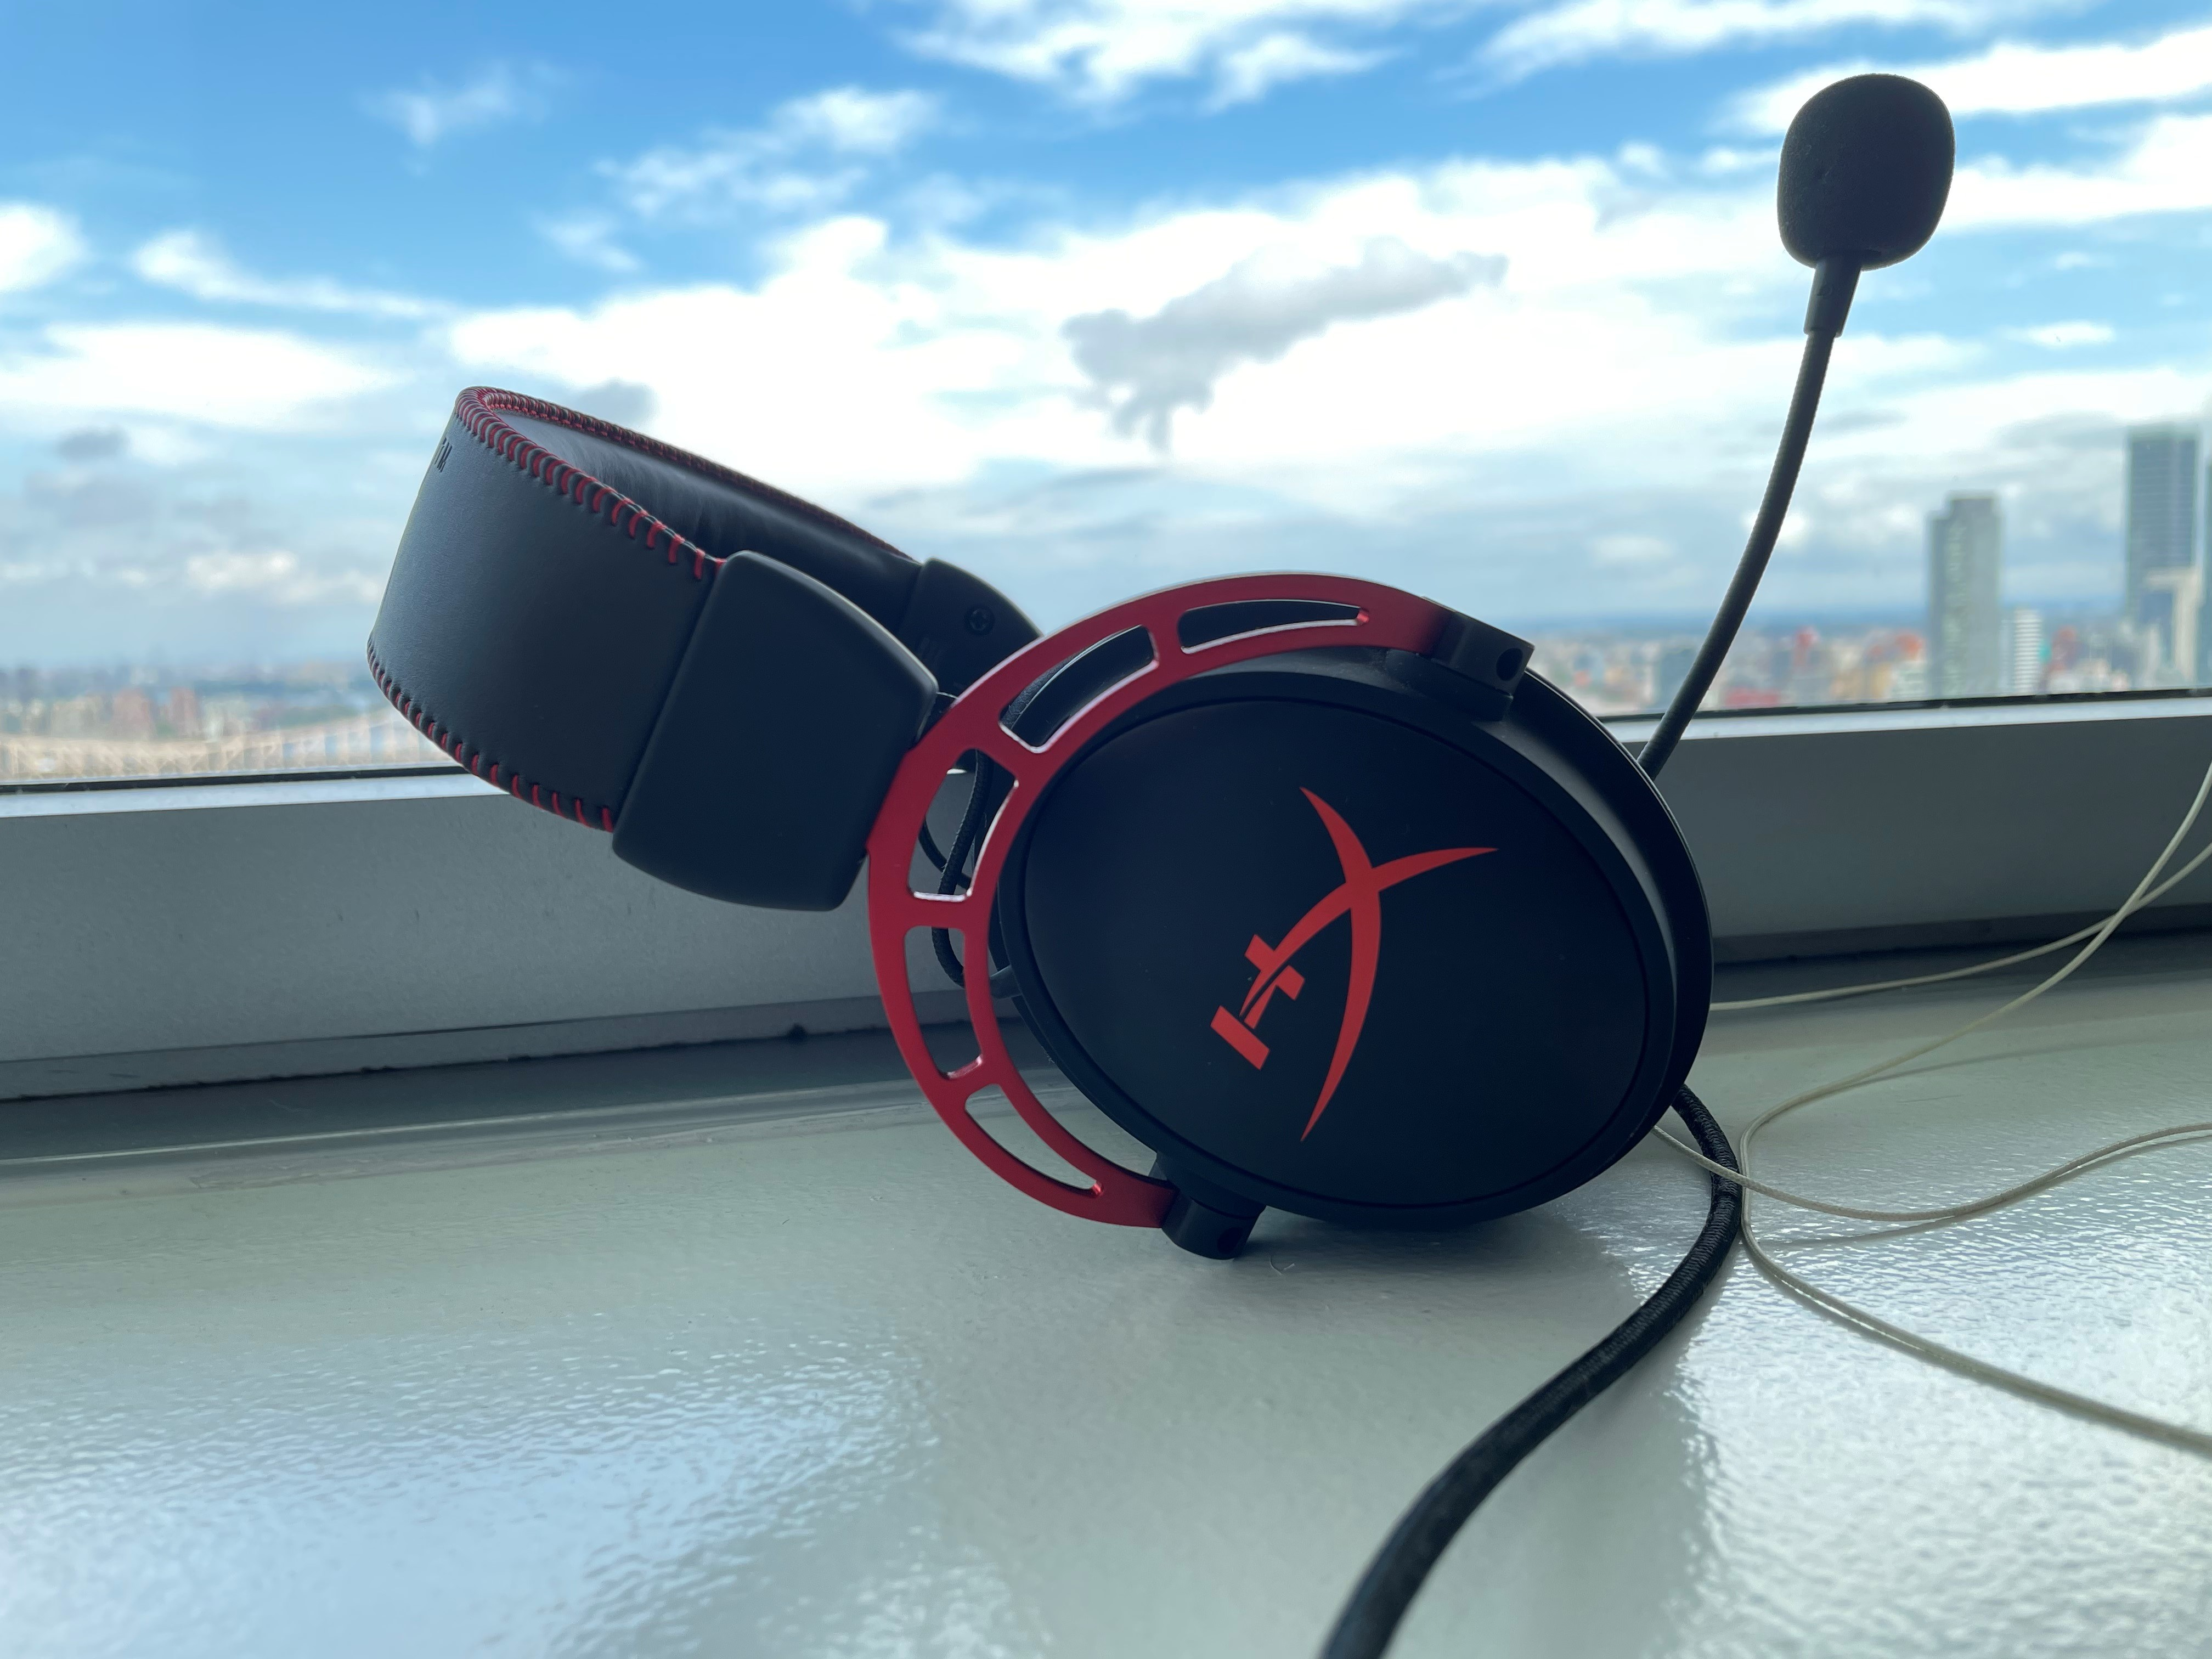 The HyperX Cloud Alpha is a comfortable and fairly balanced sounding gaming headset for less than $100, with a good detachable mic to boot.